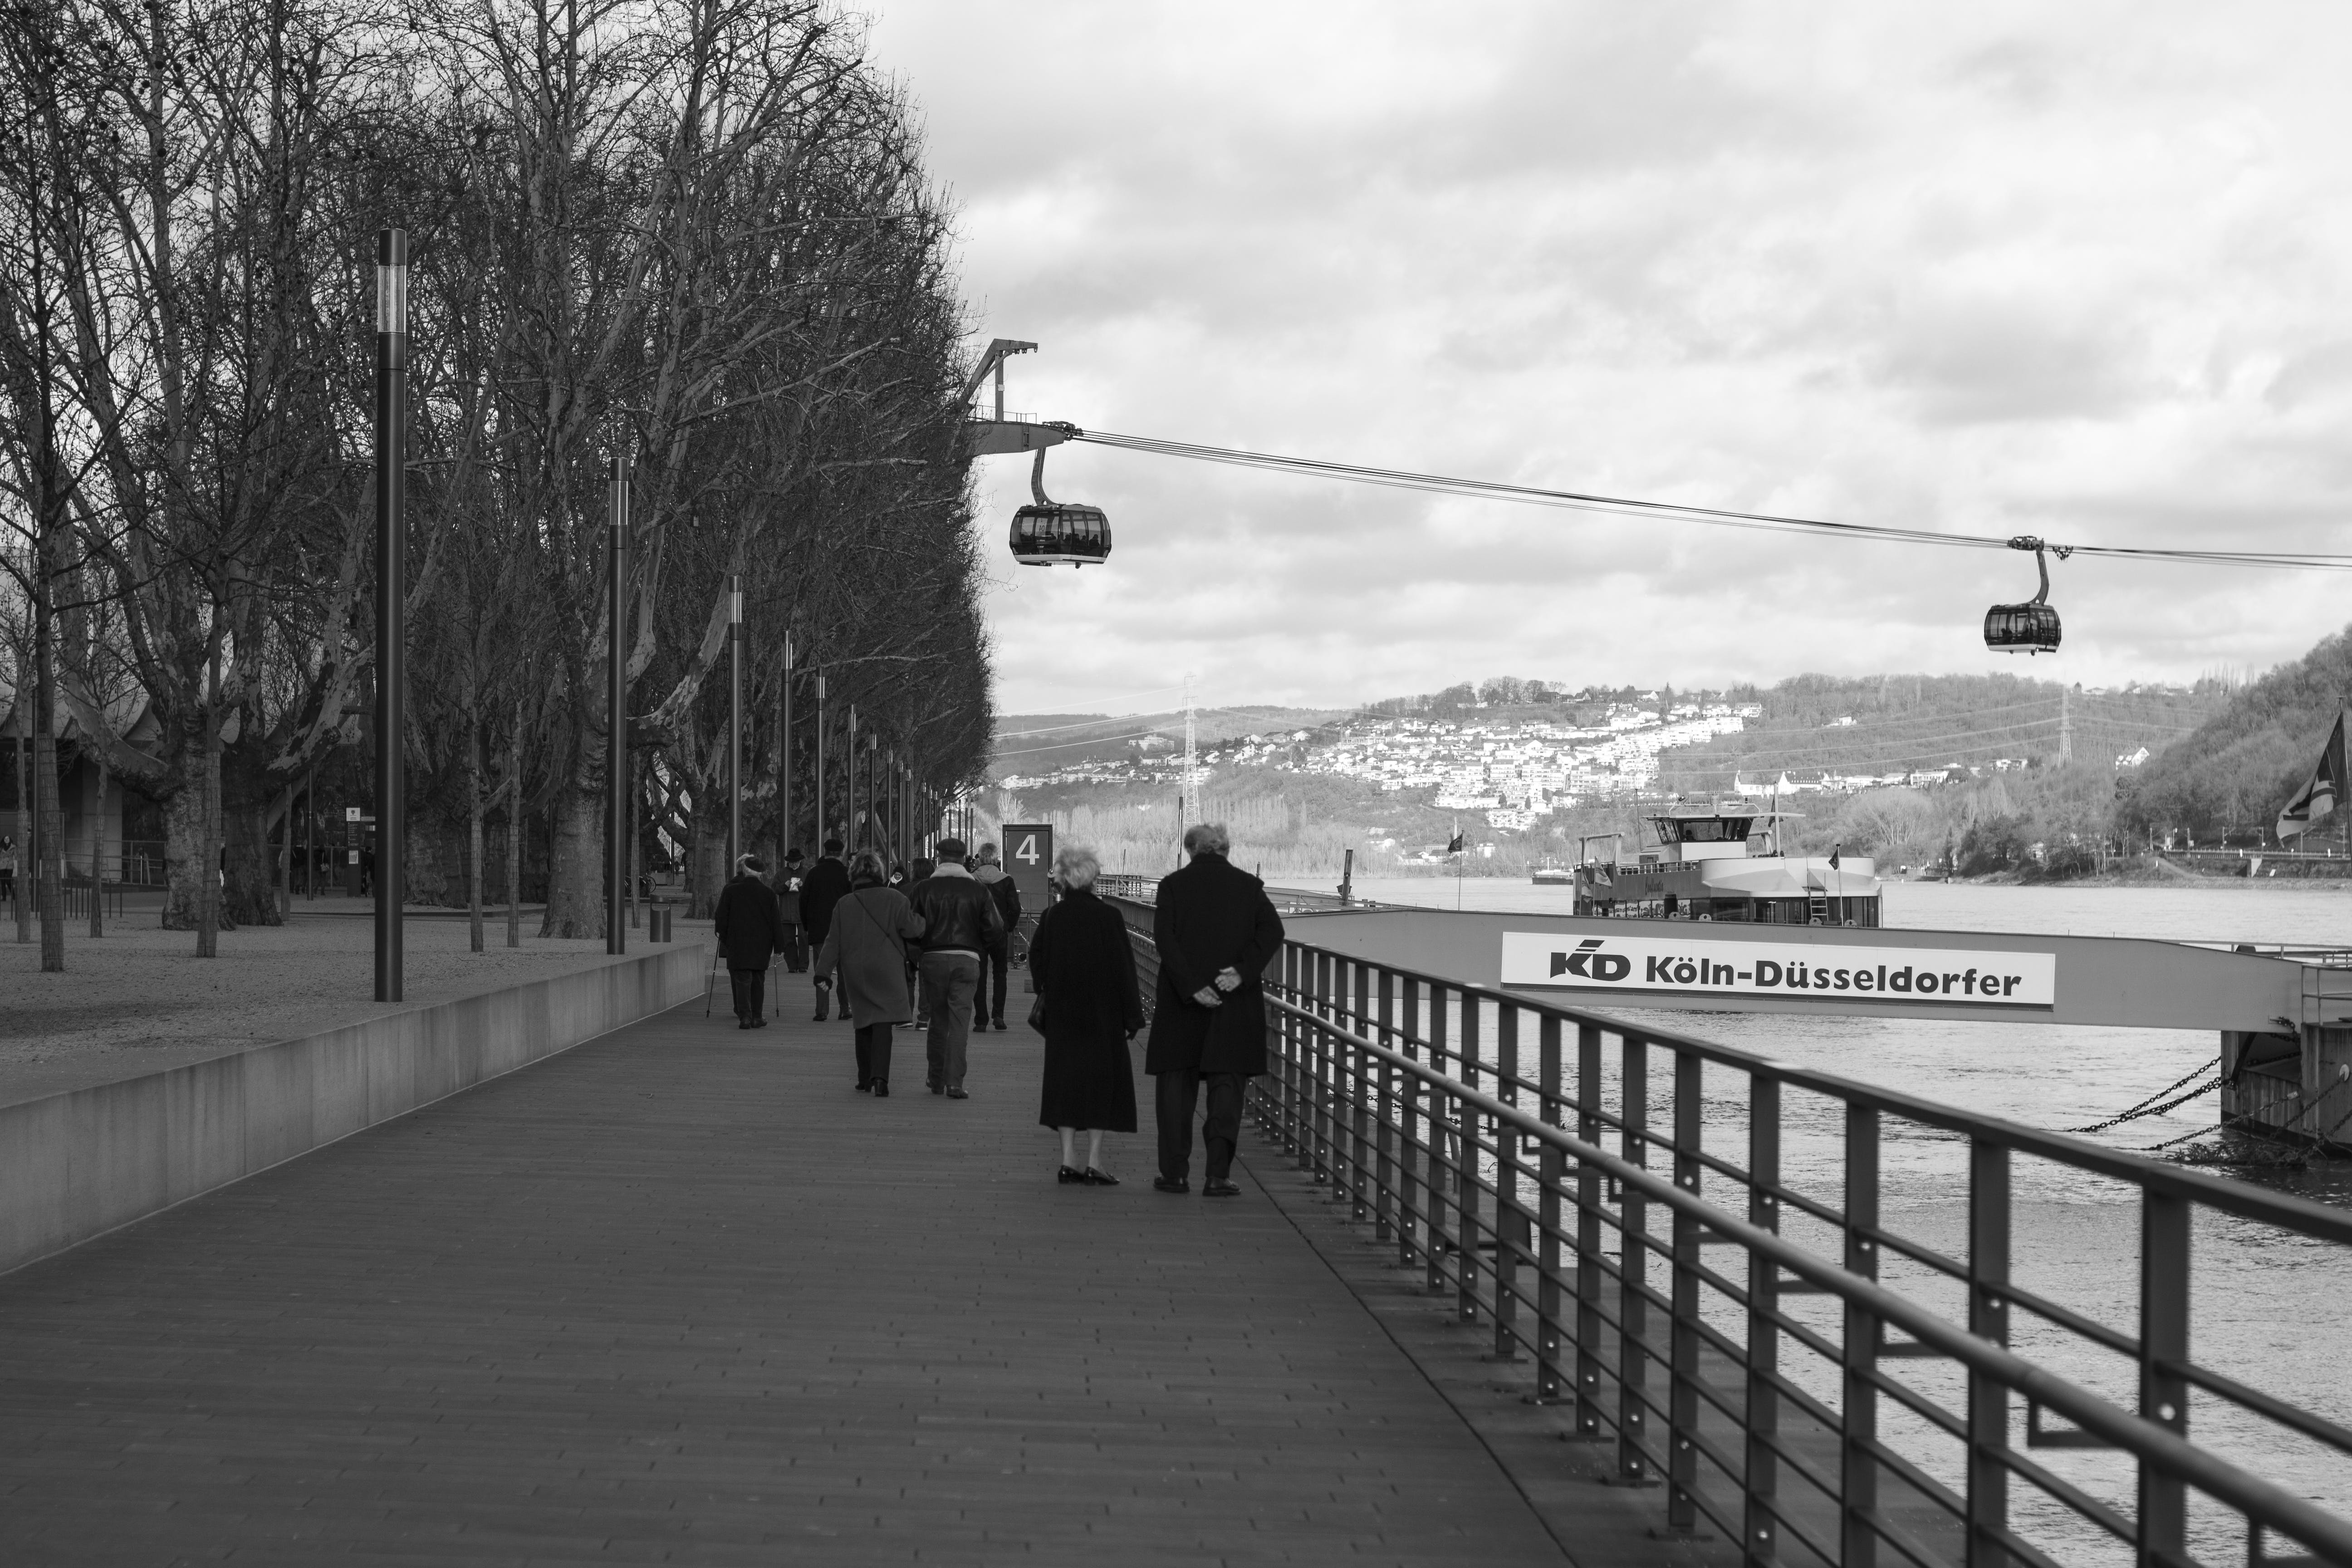 Grayscale Photo of Group of People Walking